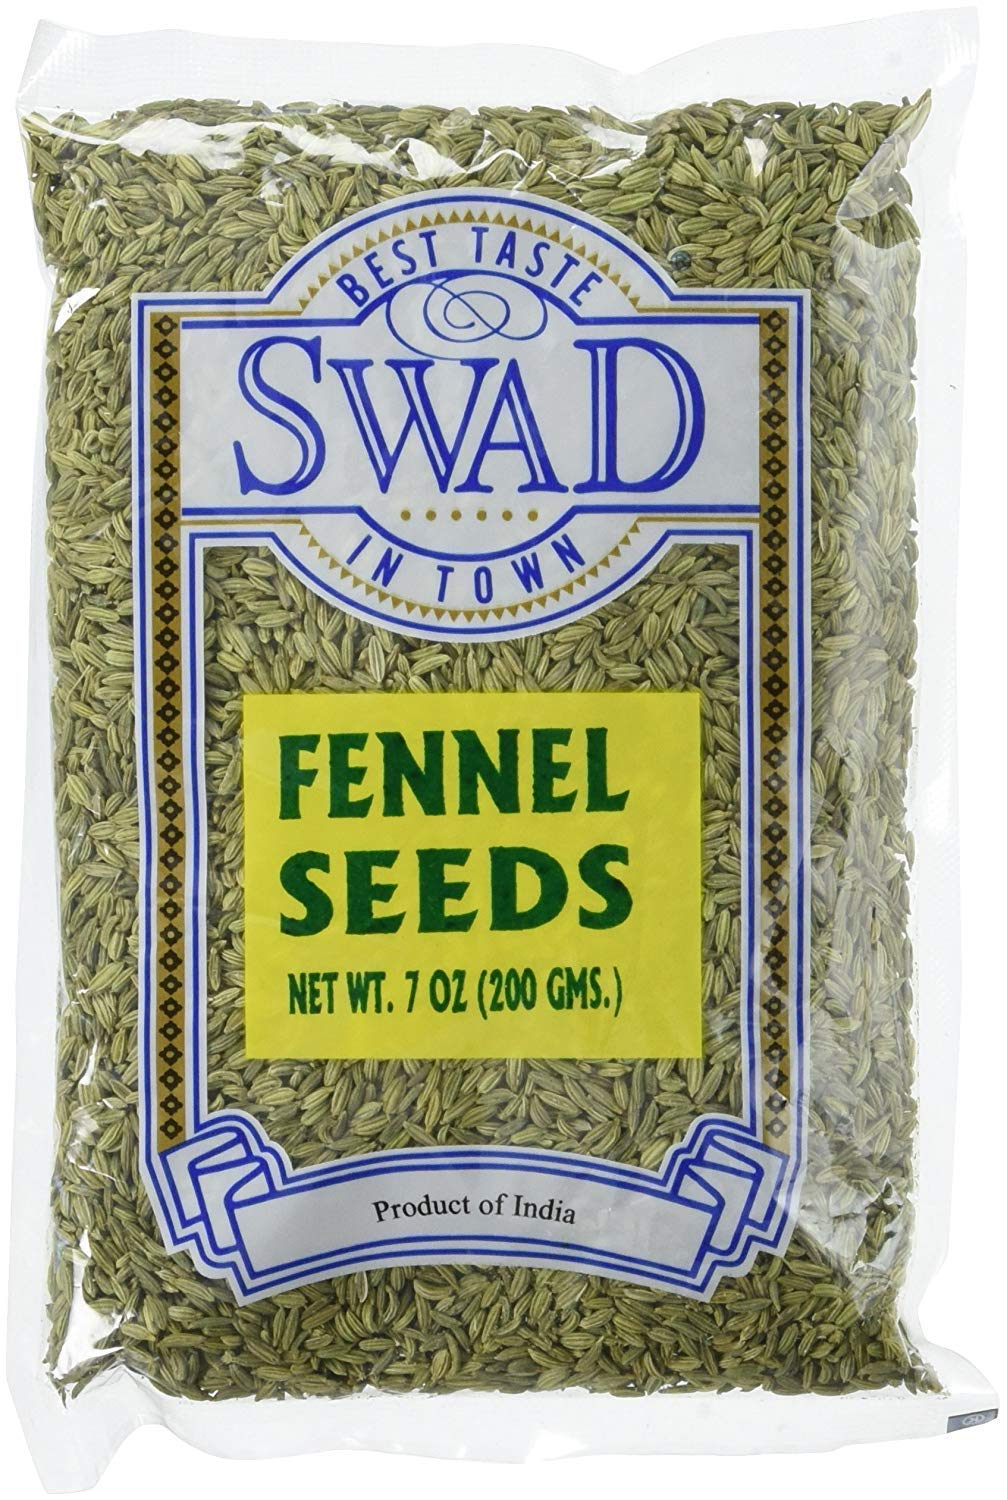 Great Bazaar Swad Fennel Seeds, 7 Ounce (7oz)